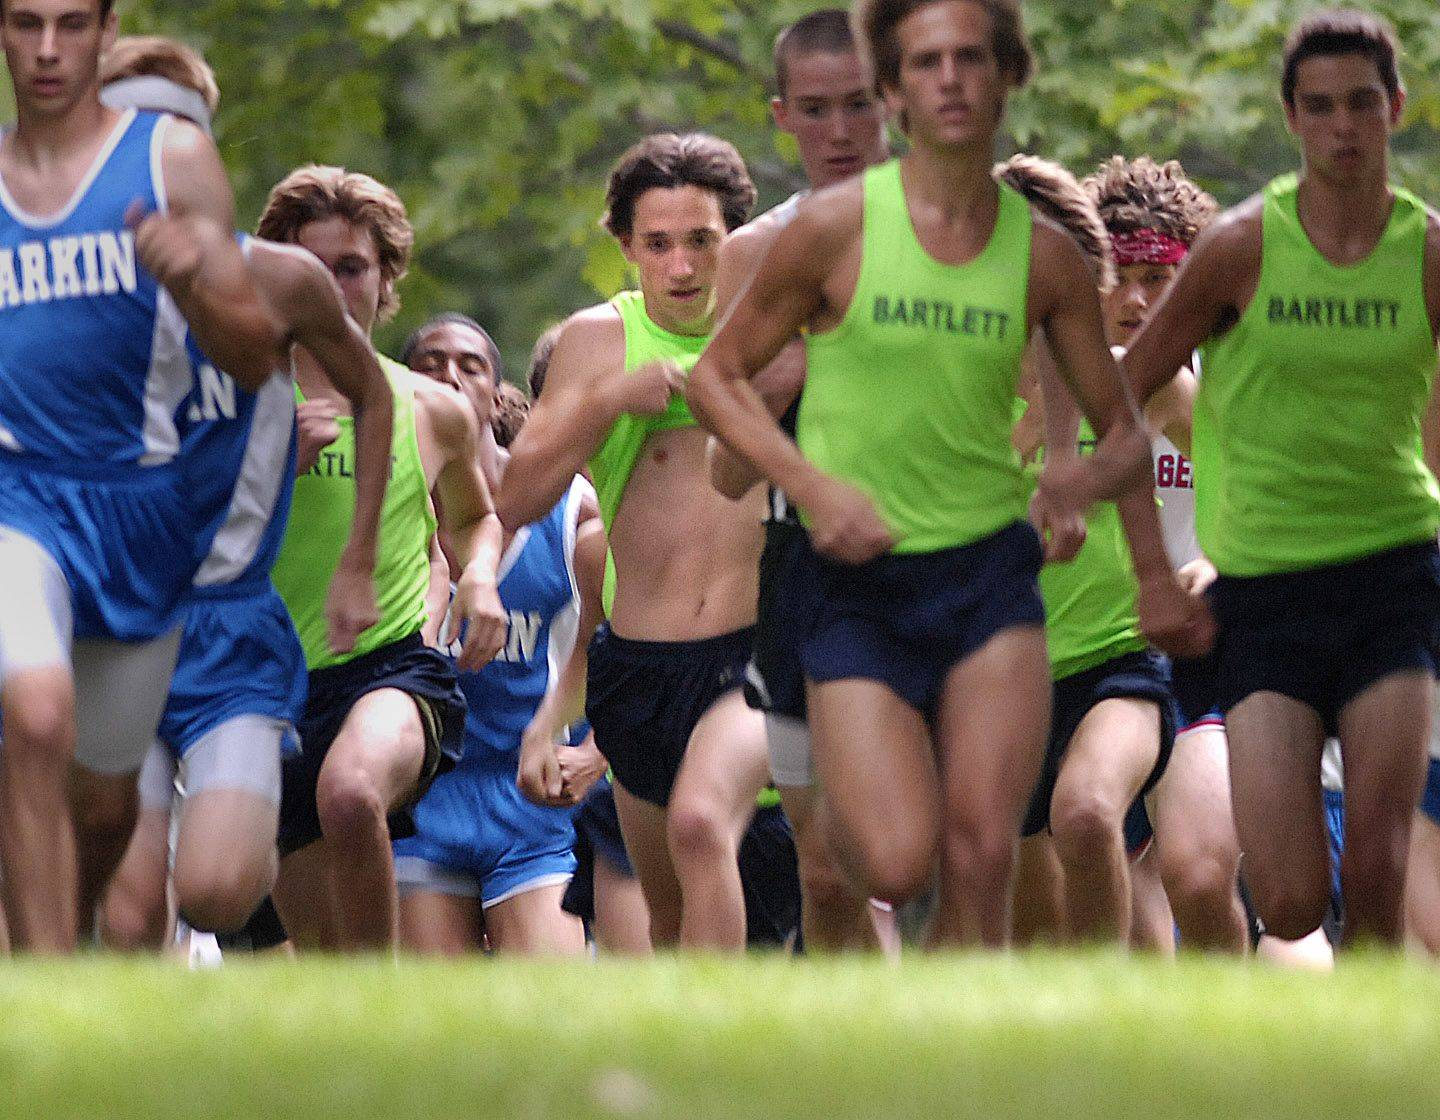 Eventual second place finisher Joey Salatino of Bartlett lifts his jersey in the starting sprint during the Elgin cross country invitational Tuesday at Lords Park.